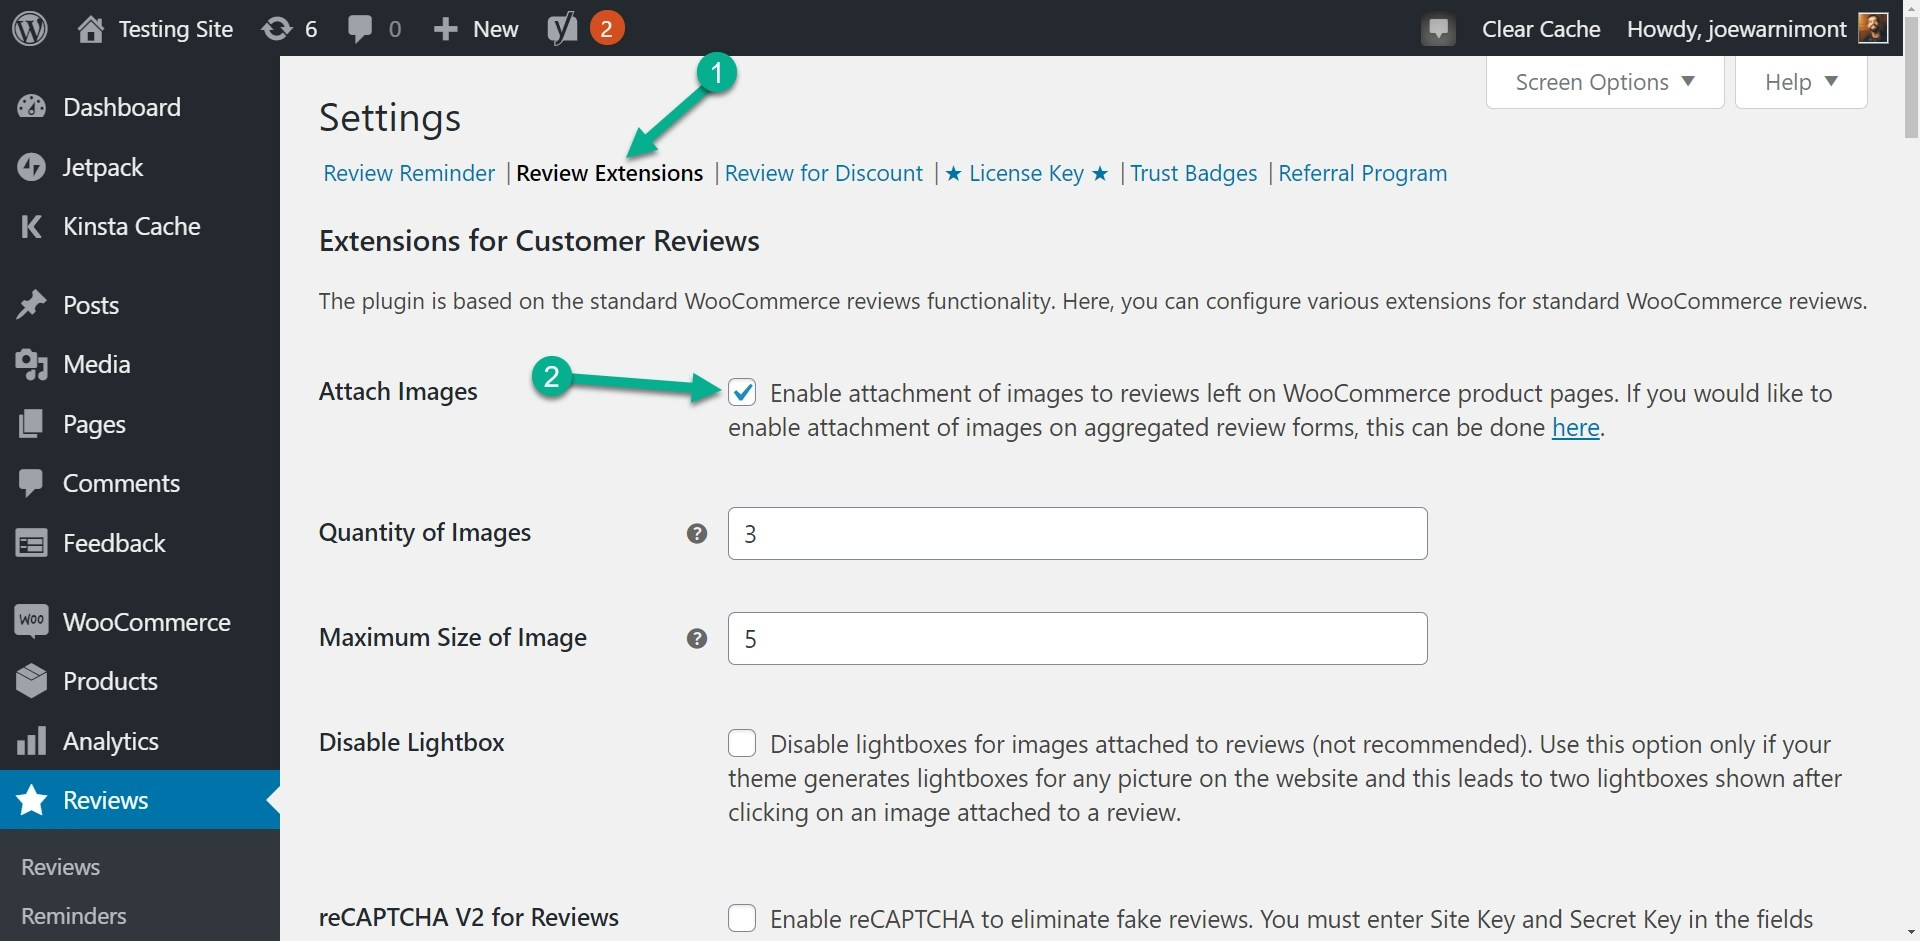 review extensions and attach images on customer reviews for WooCommerce